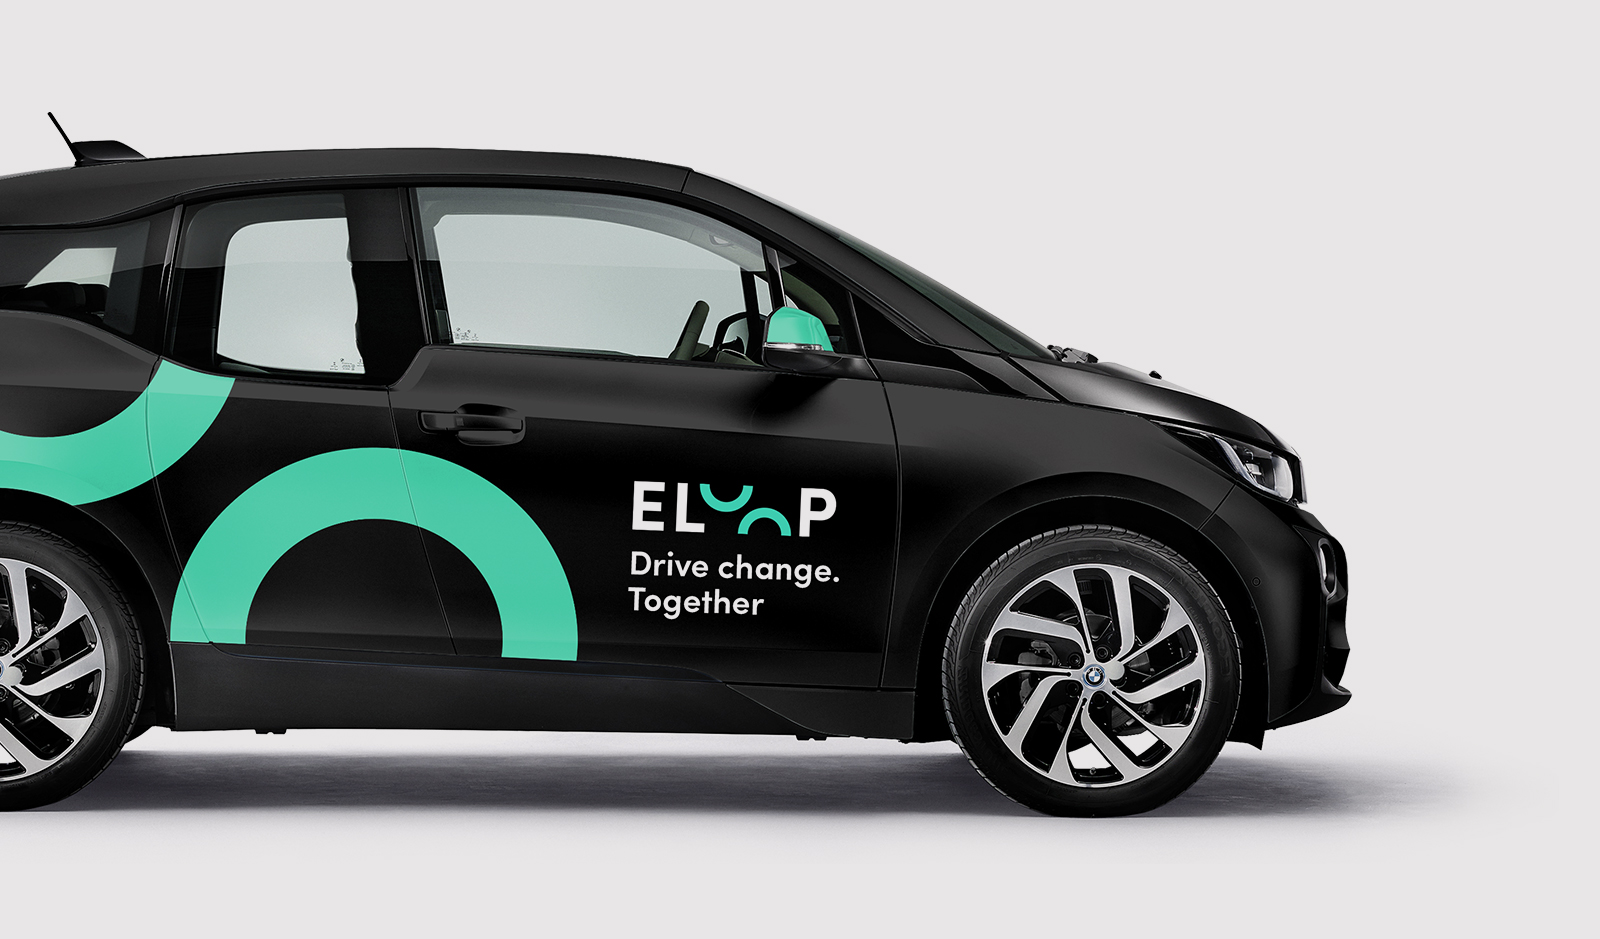 Eloop Car Sharing